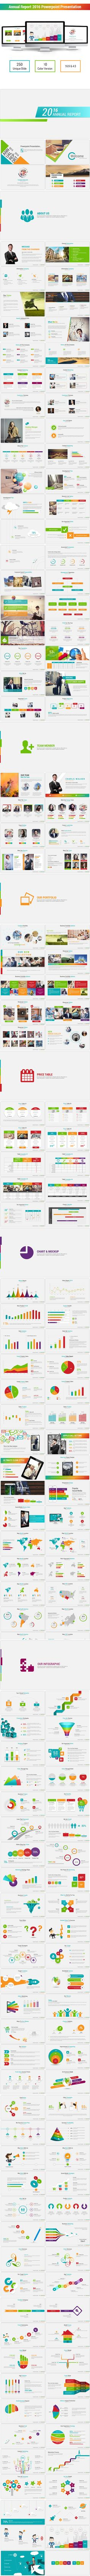 Annual Report 2016 Powerpoint Presentation Templates